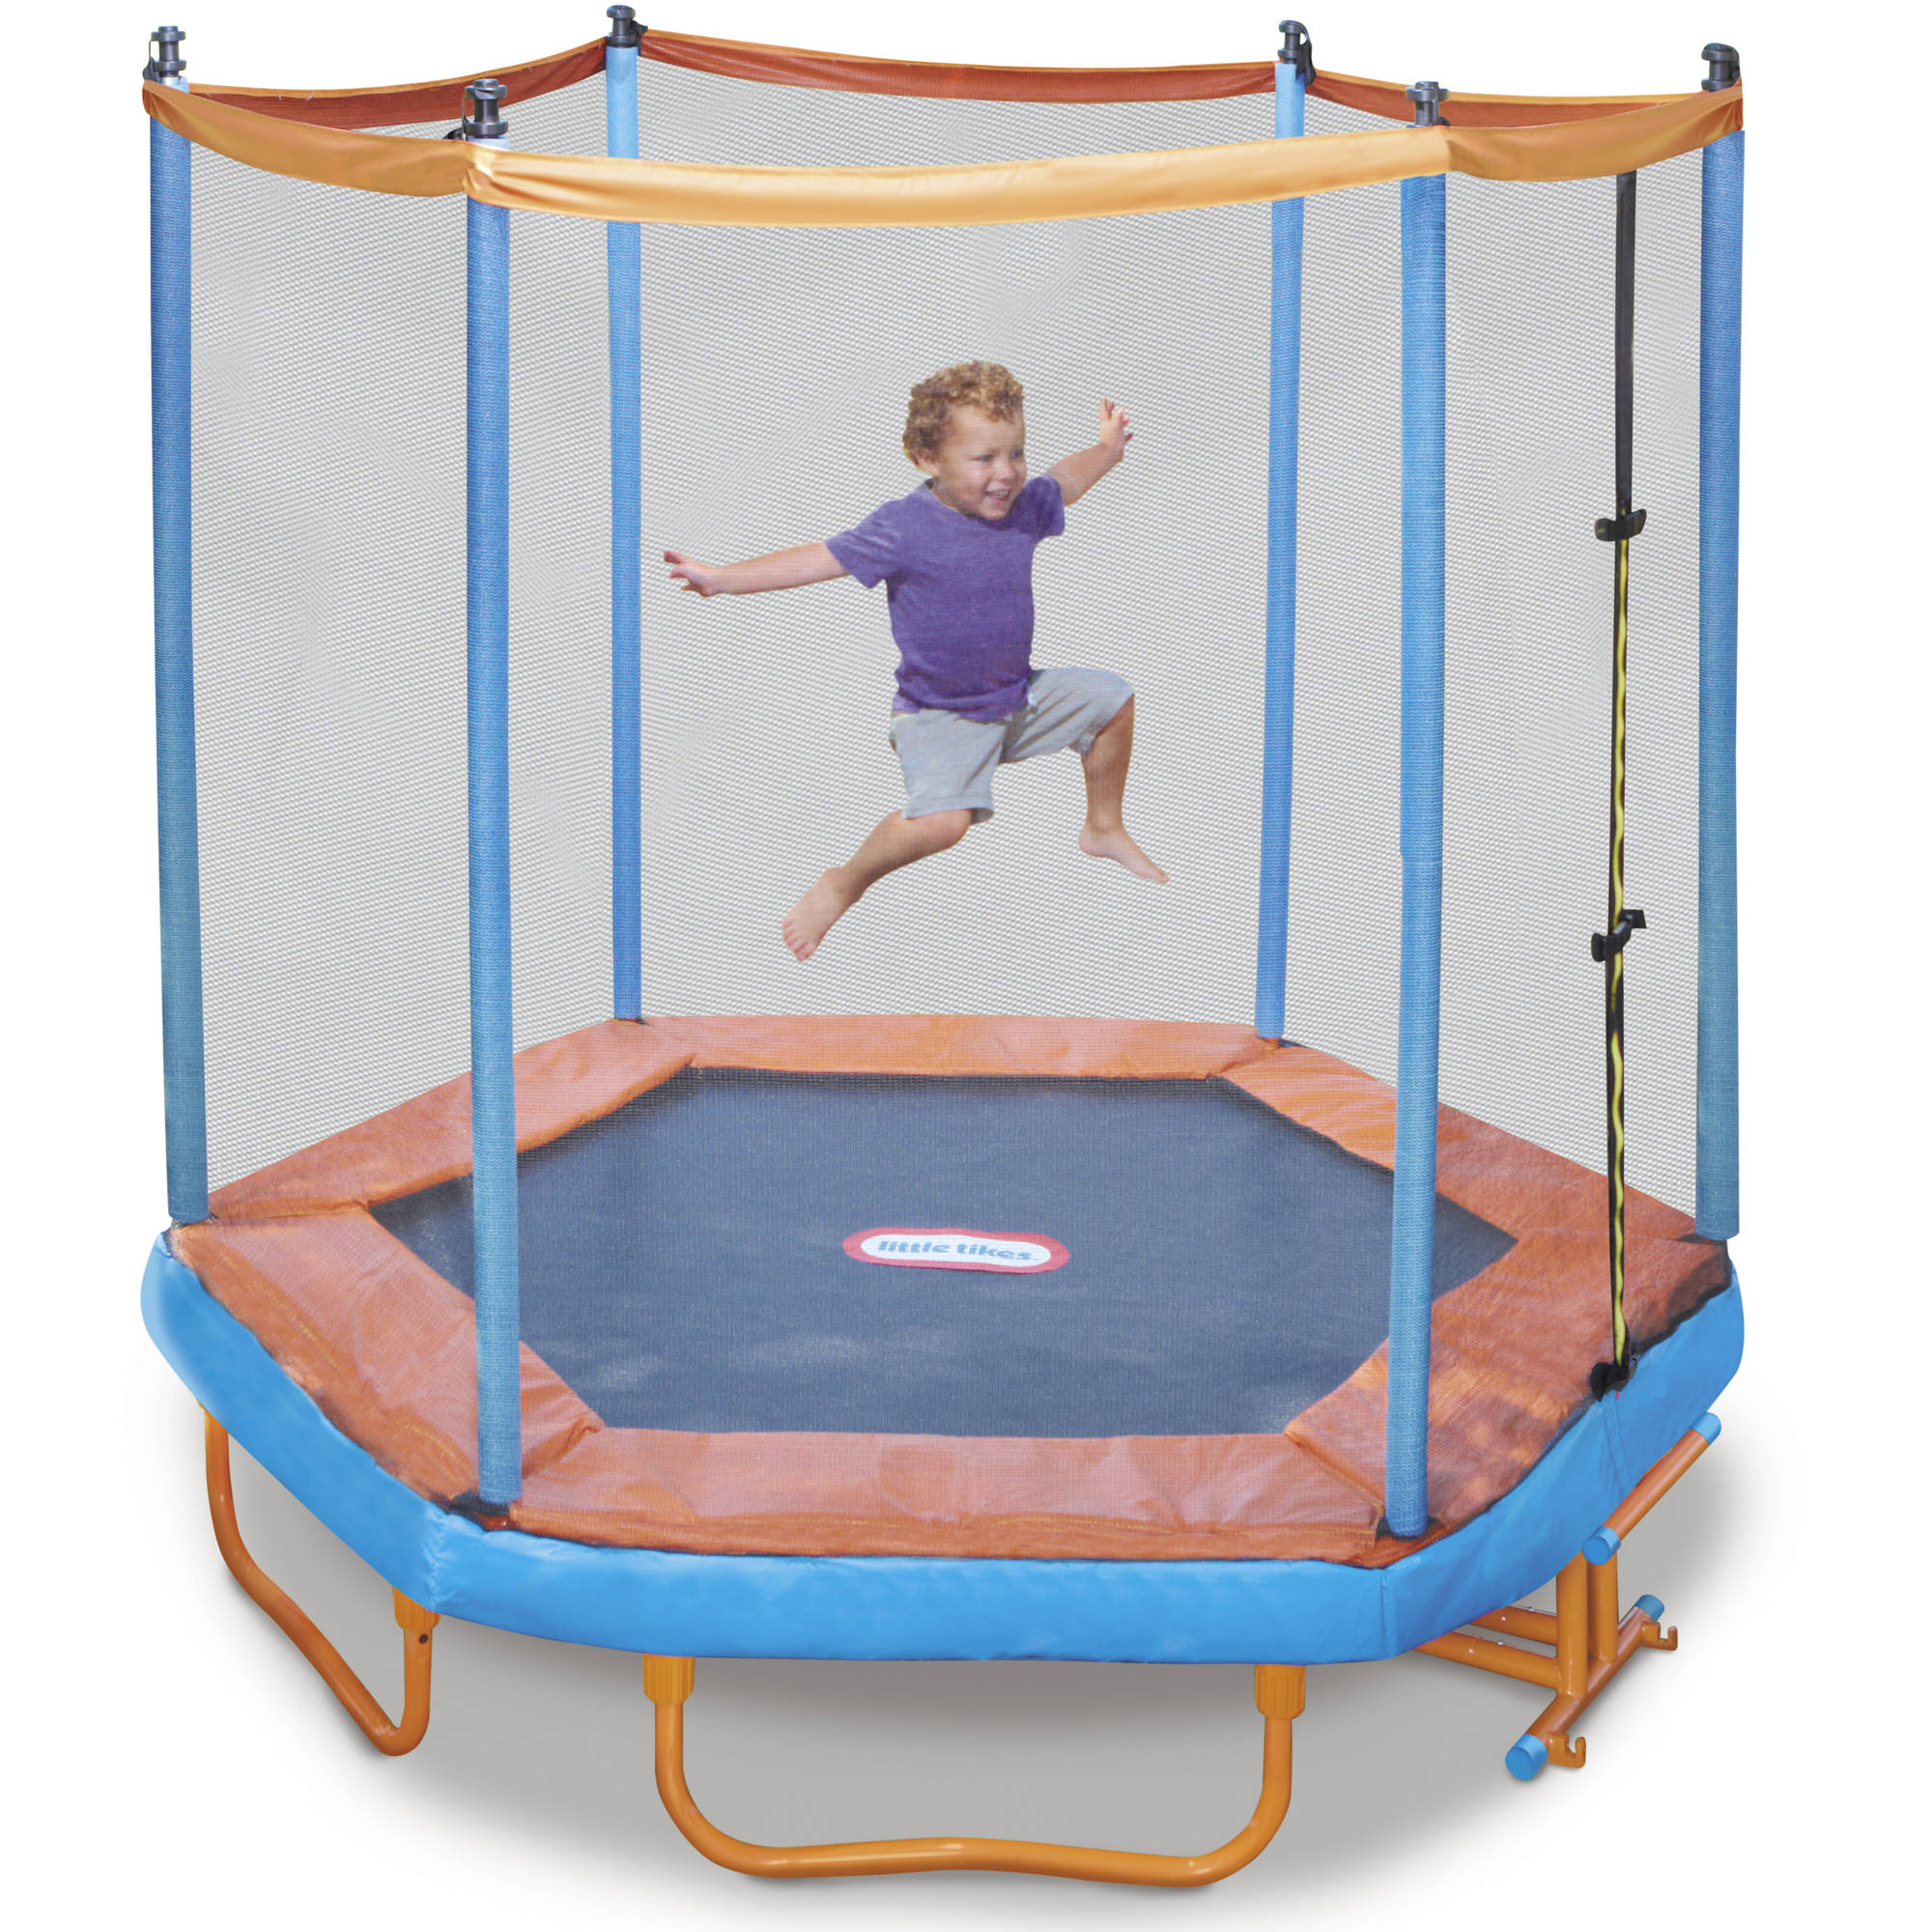 Little Tikes Easy Store 7' Folding Trampoline